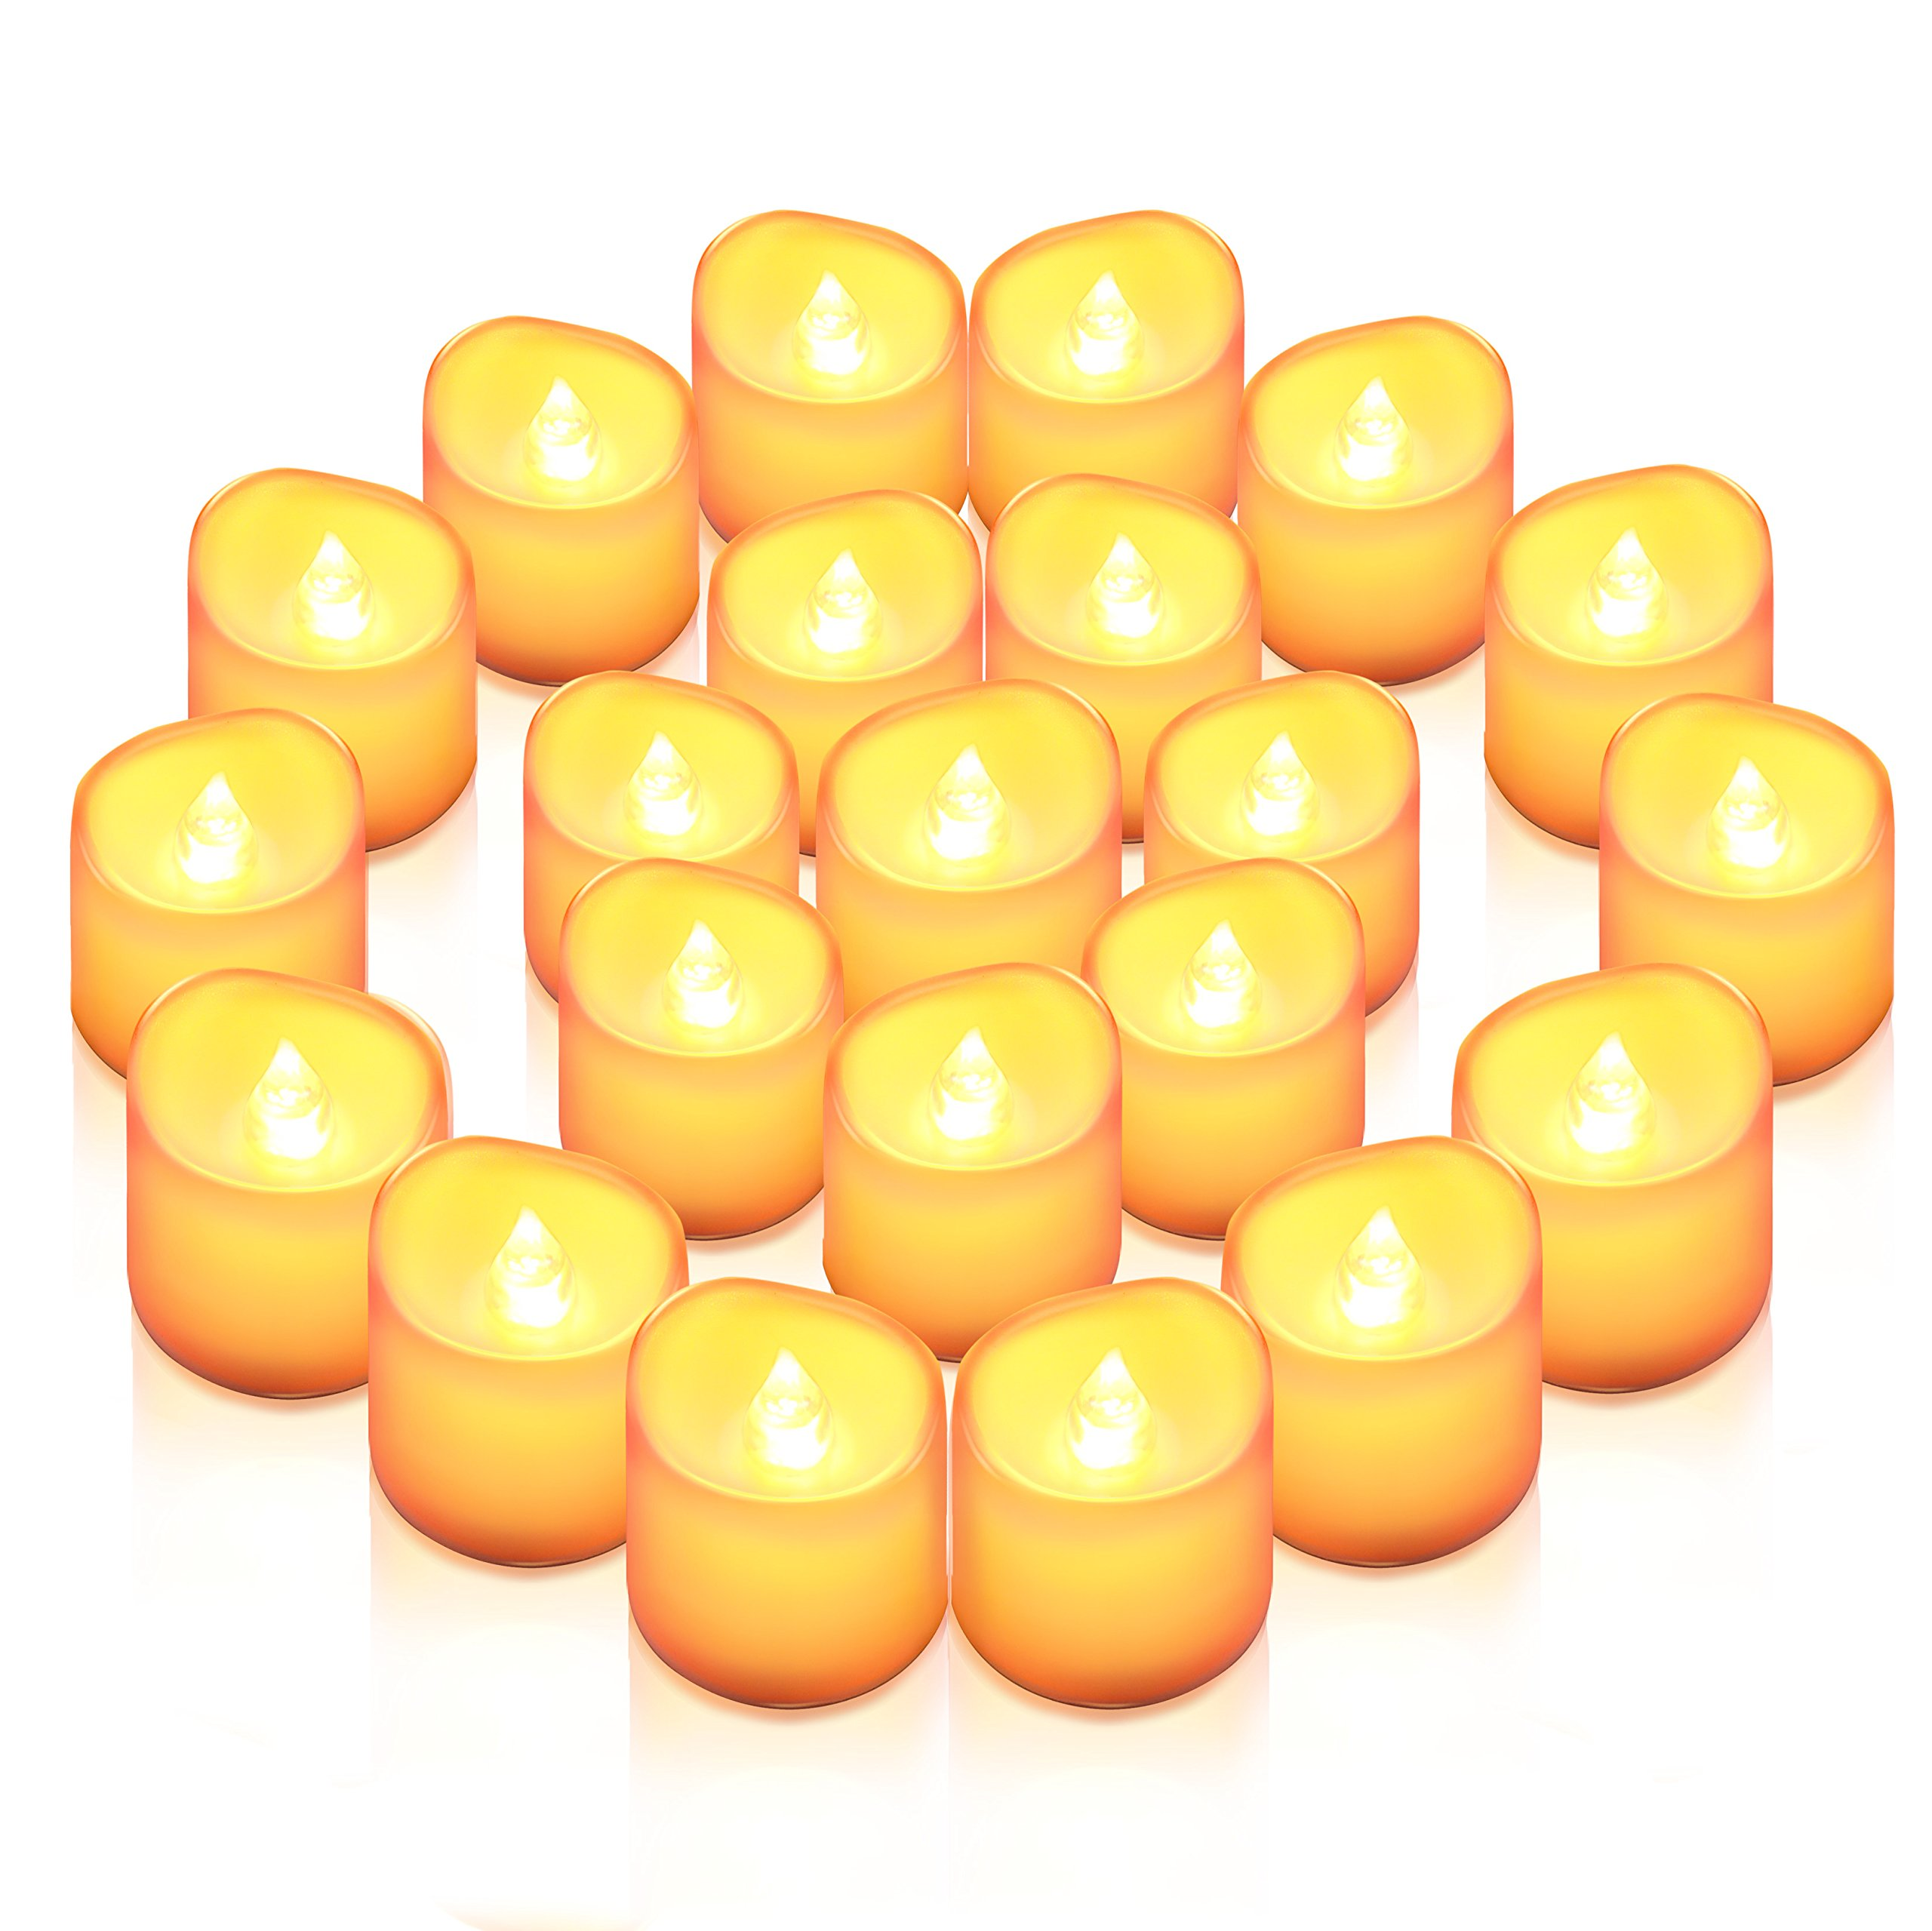 AMIR Flameless Candles, 24 PCS LED Tea Light Candles, Realistic Flickering Votive Candle Lights for Seasonal & Festival Celebration, Party & Wedding Decoration, Wave Open Battery Included (Warm White)